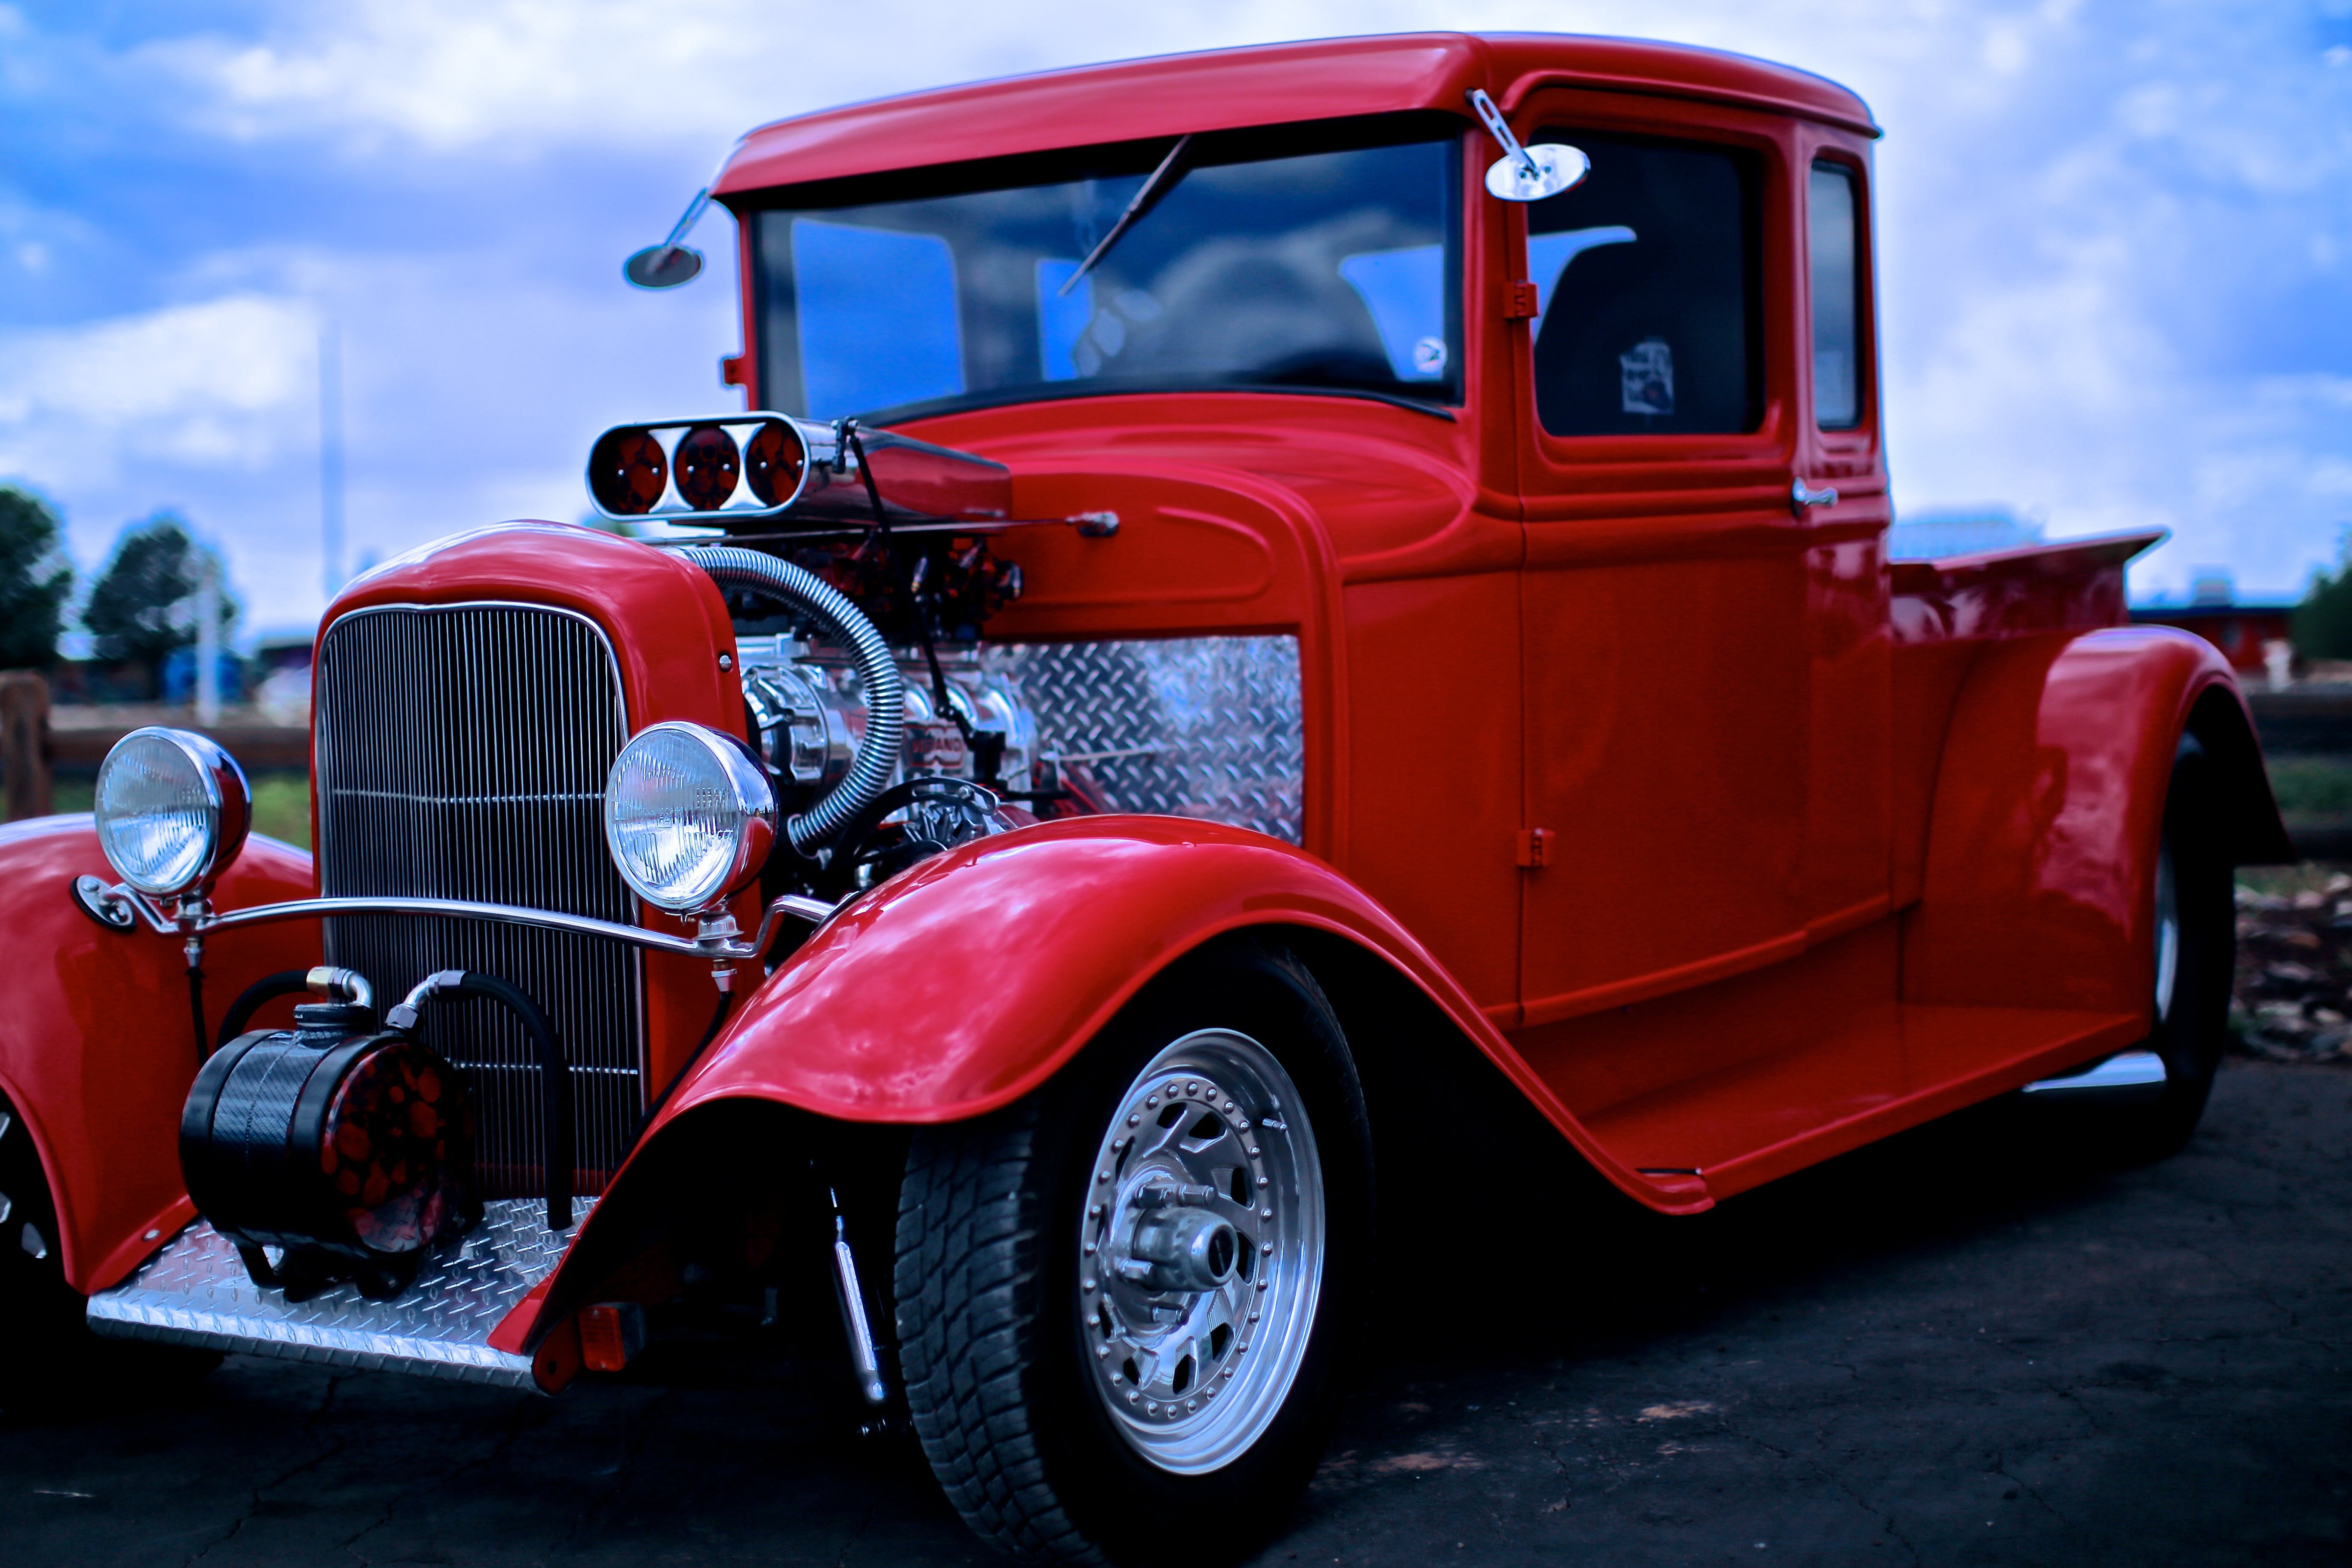 Classic Red Ford Pickup Truck